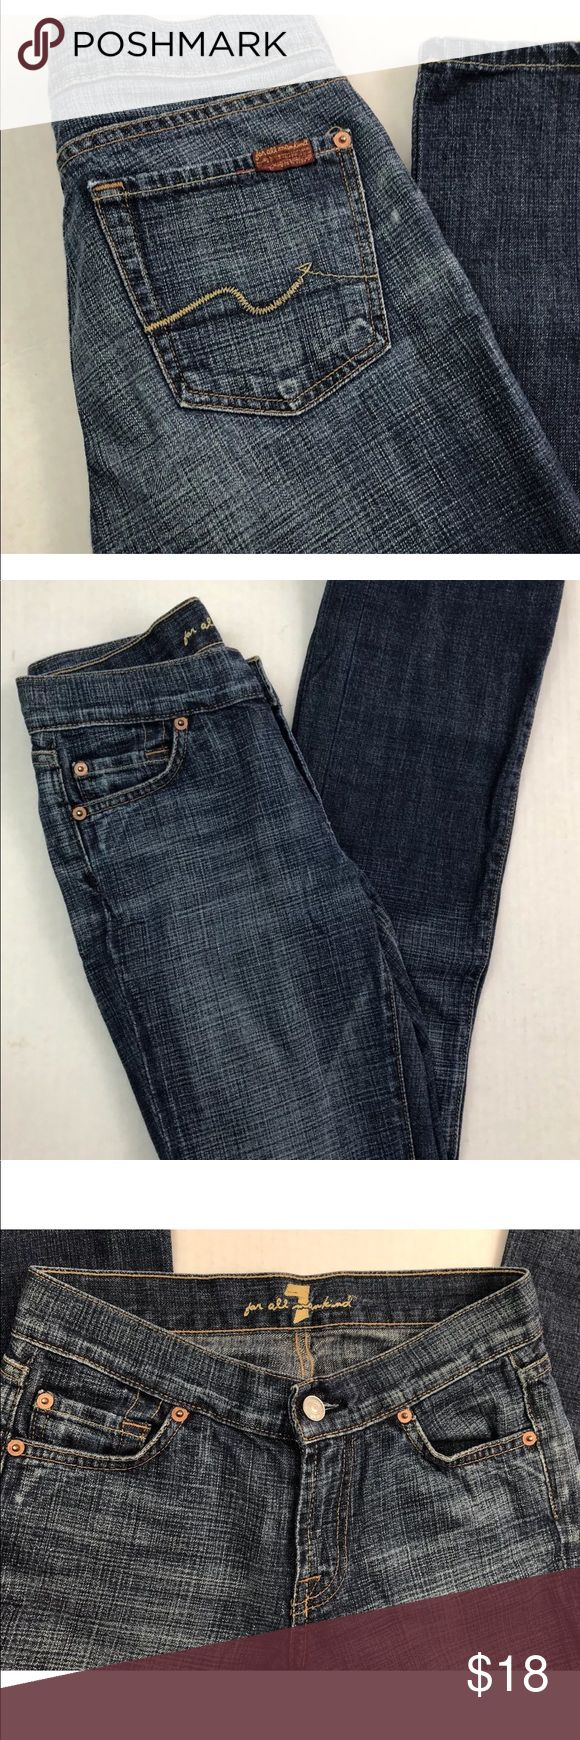 """7 For All Mankind Women's Bootcut Jeans Size 24 7 For All Mankind Women's Bootcut Jeans   Medium Wash   Size 24  Inseam 31""""  Waist 23 1/4"""" Low Hip 34 1/4"""" Thigh 20""""  Nice condition -- very minimal wear --- no fraying at hem --- see pics for details  Smoke-free home 7 For All Mankind Jeans"""